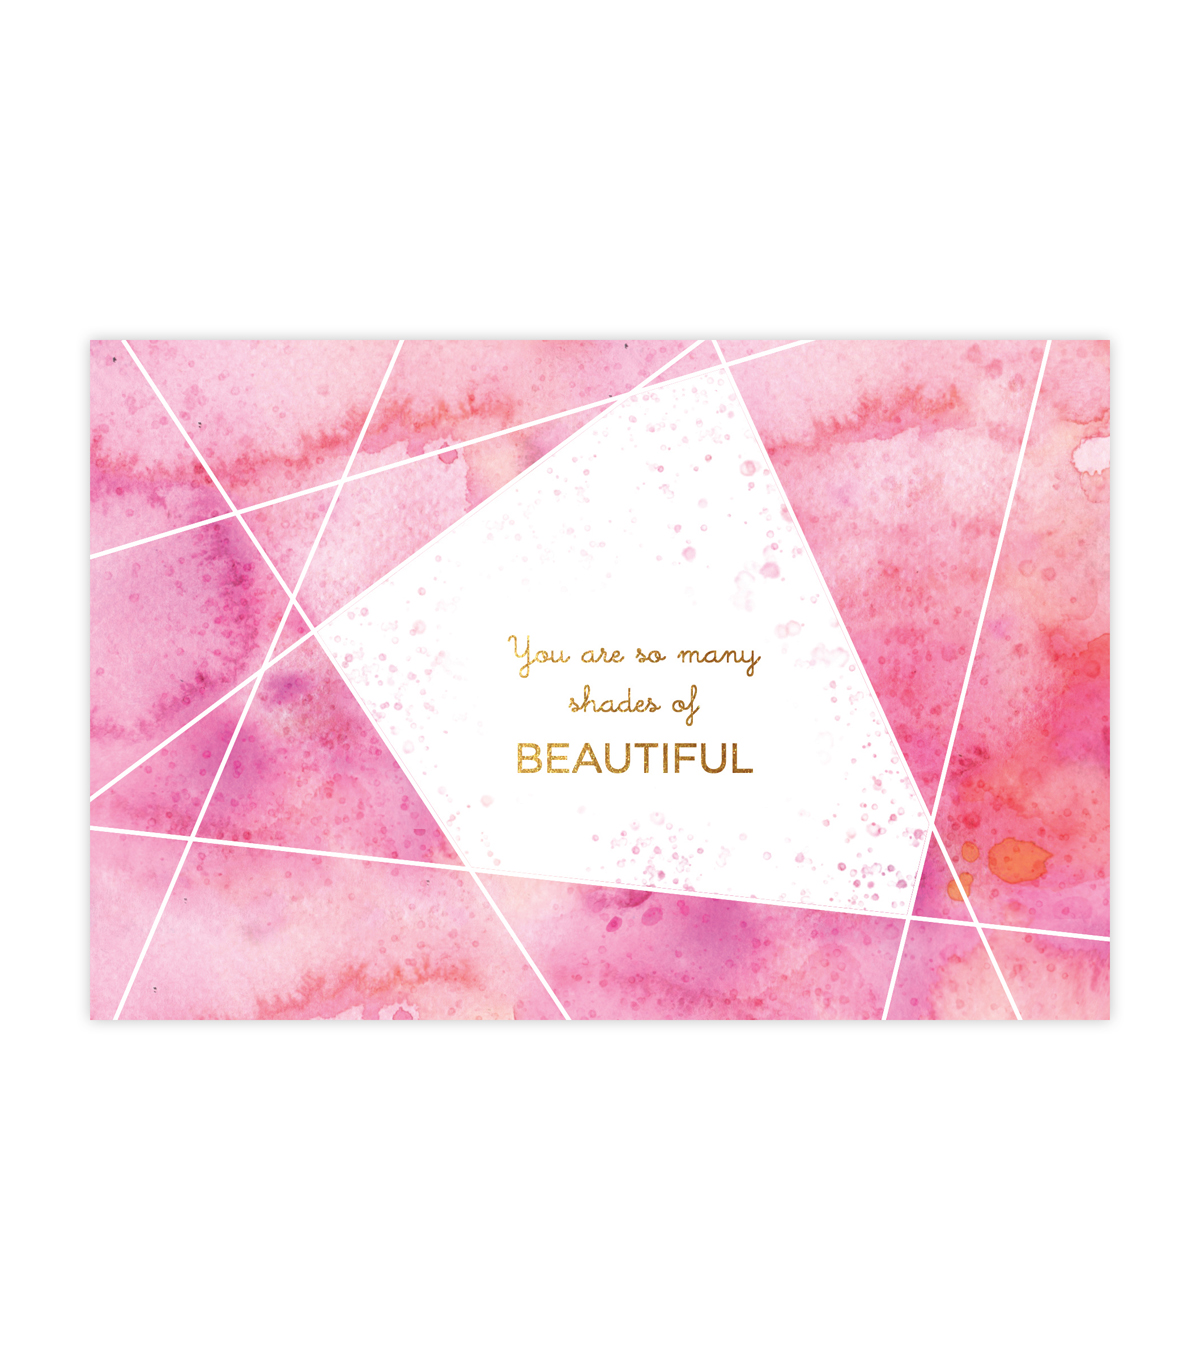 Creative Girl Watercolor Cards Shades of Beautiful 6Pk